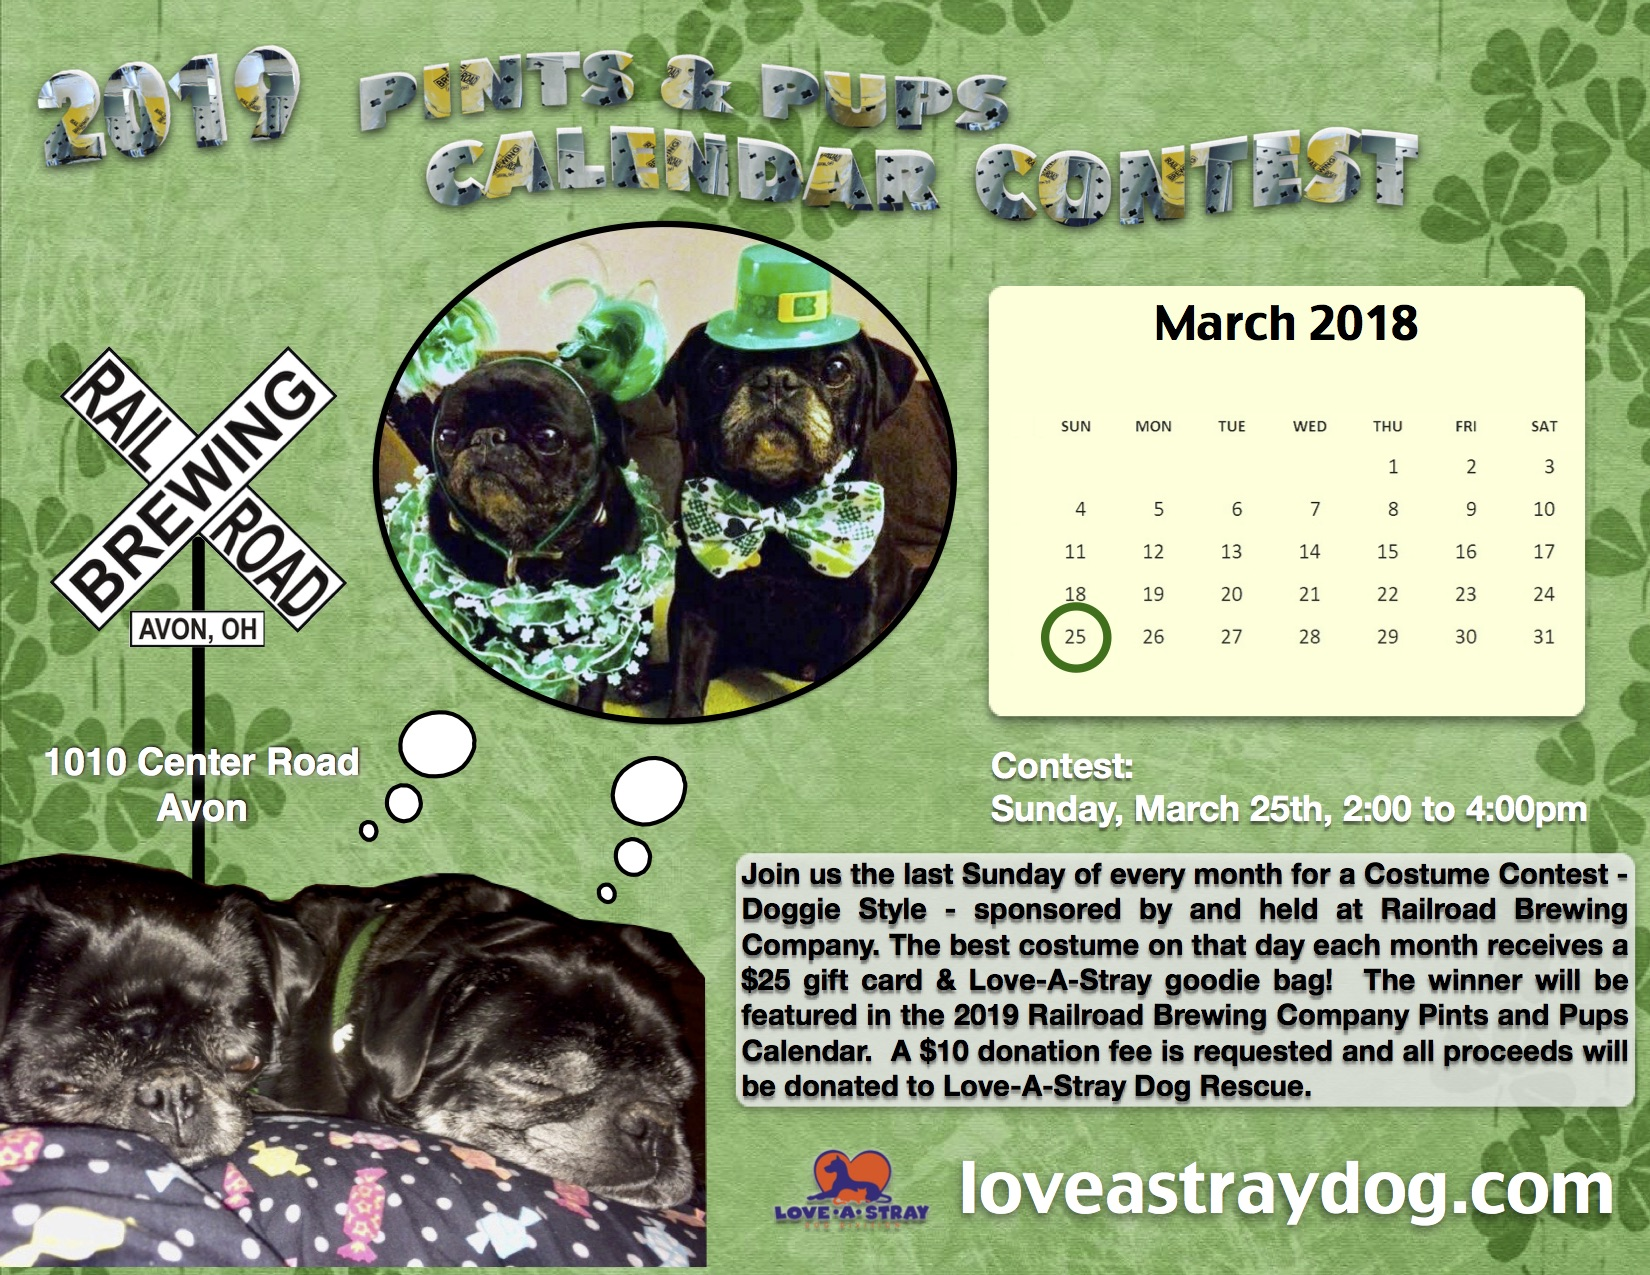 2019 Pints for Pups Calendar Contest - March